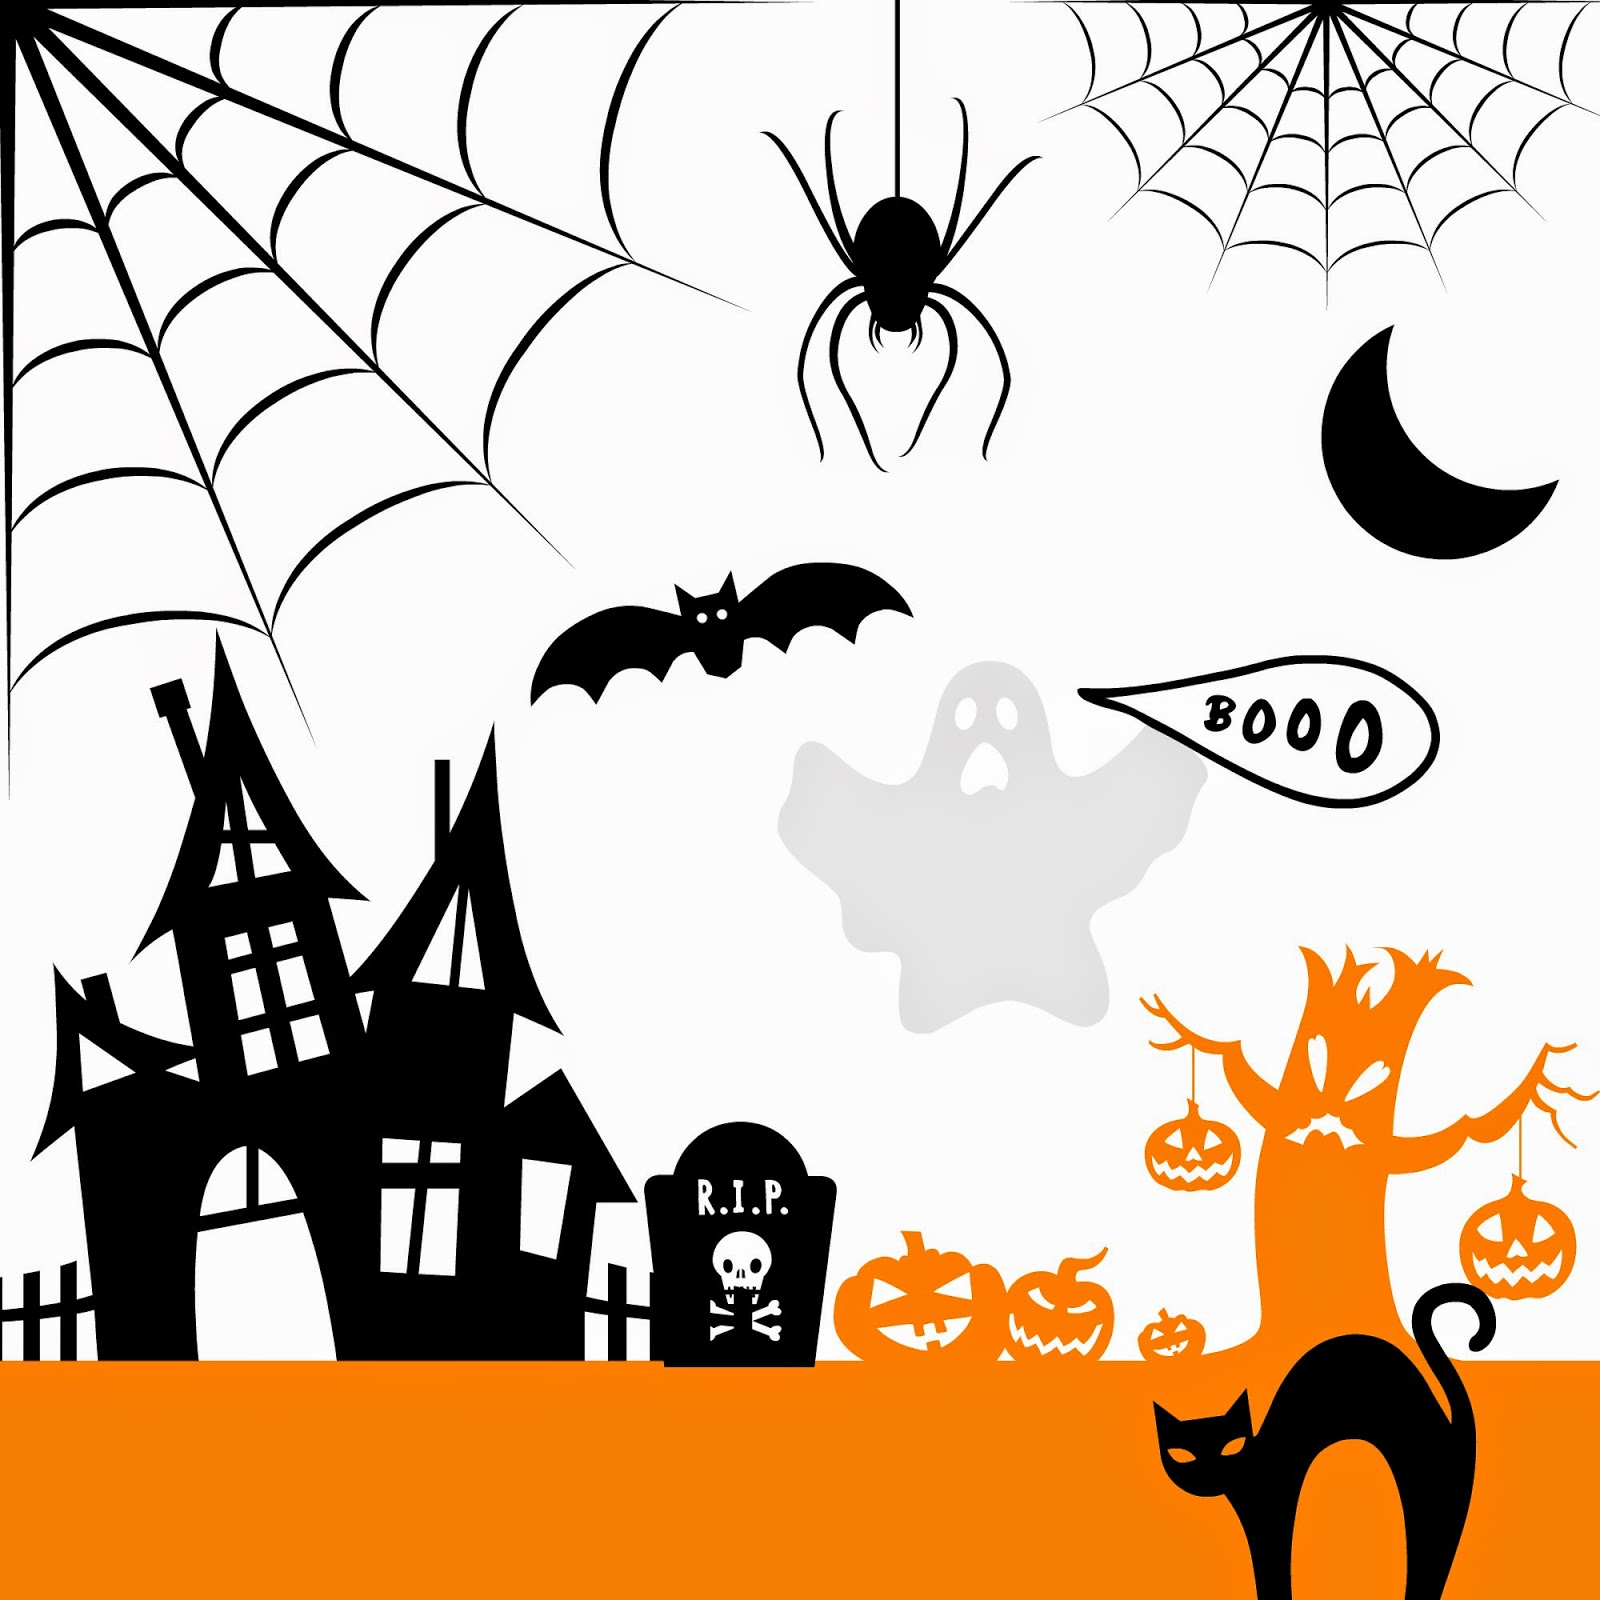 Silhouette, friendly, free, halloween designs